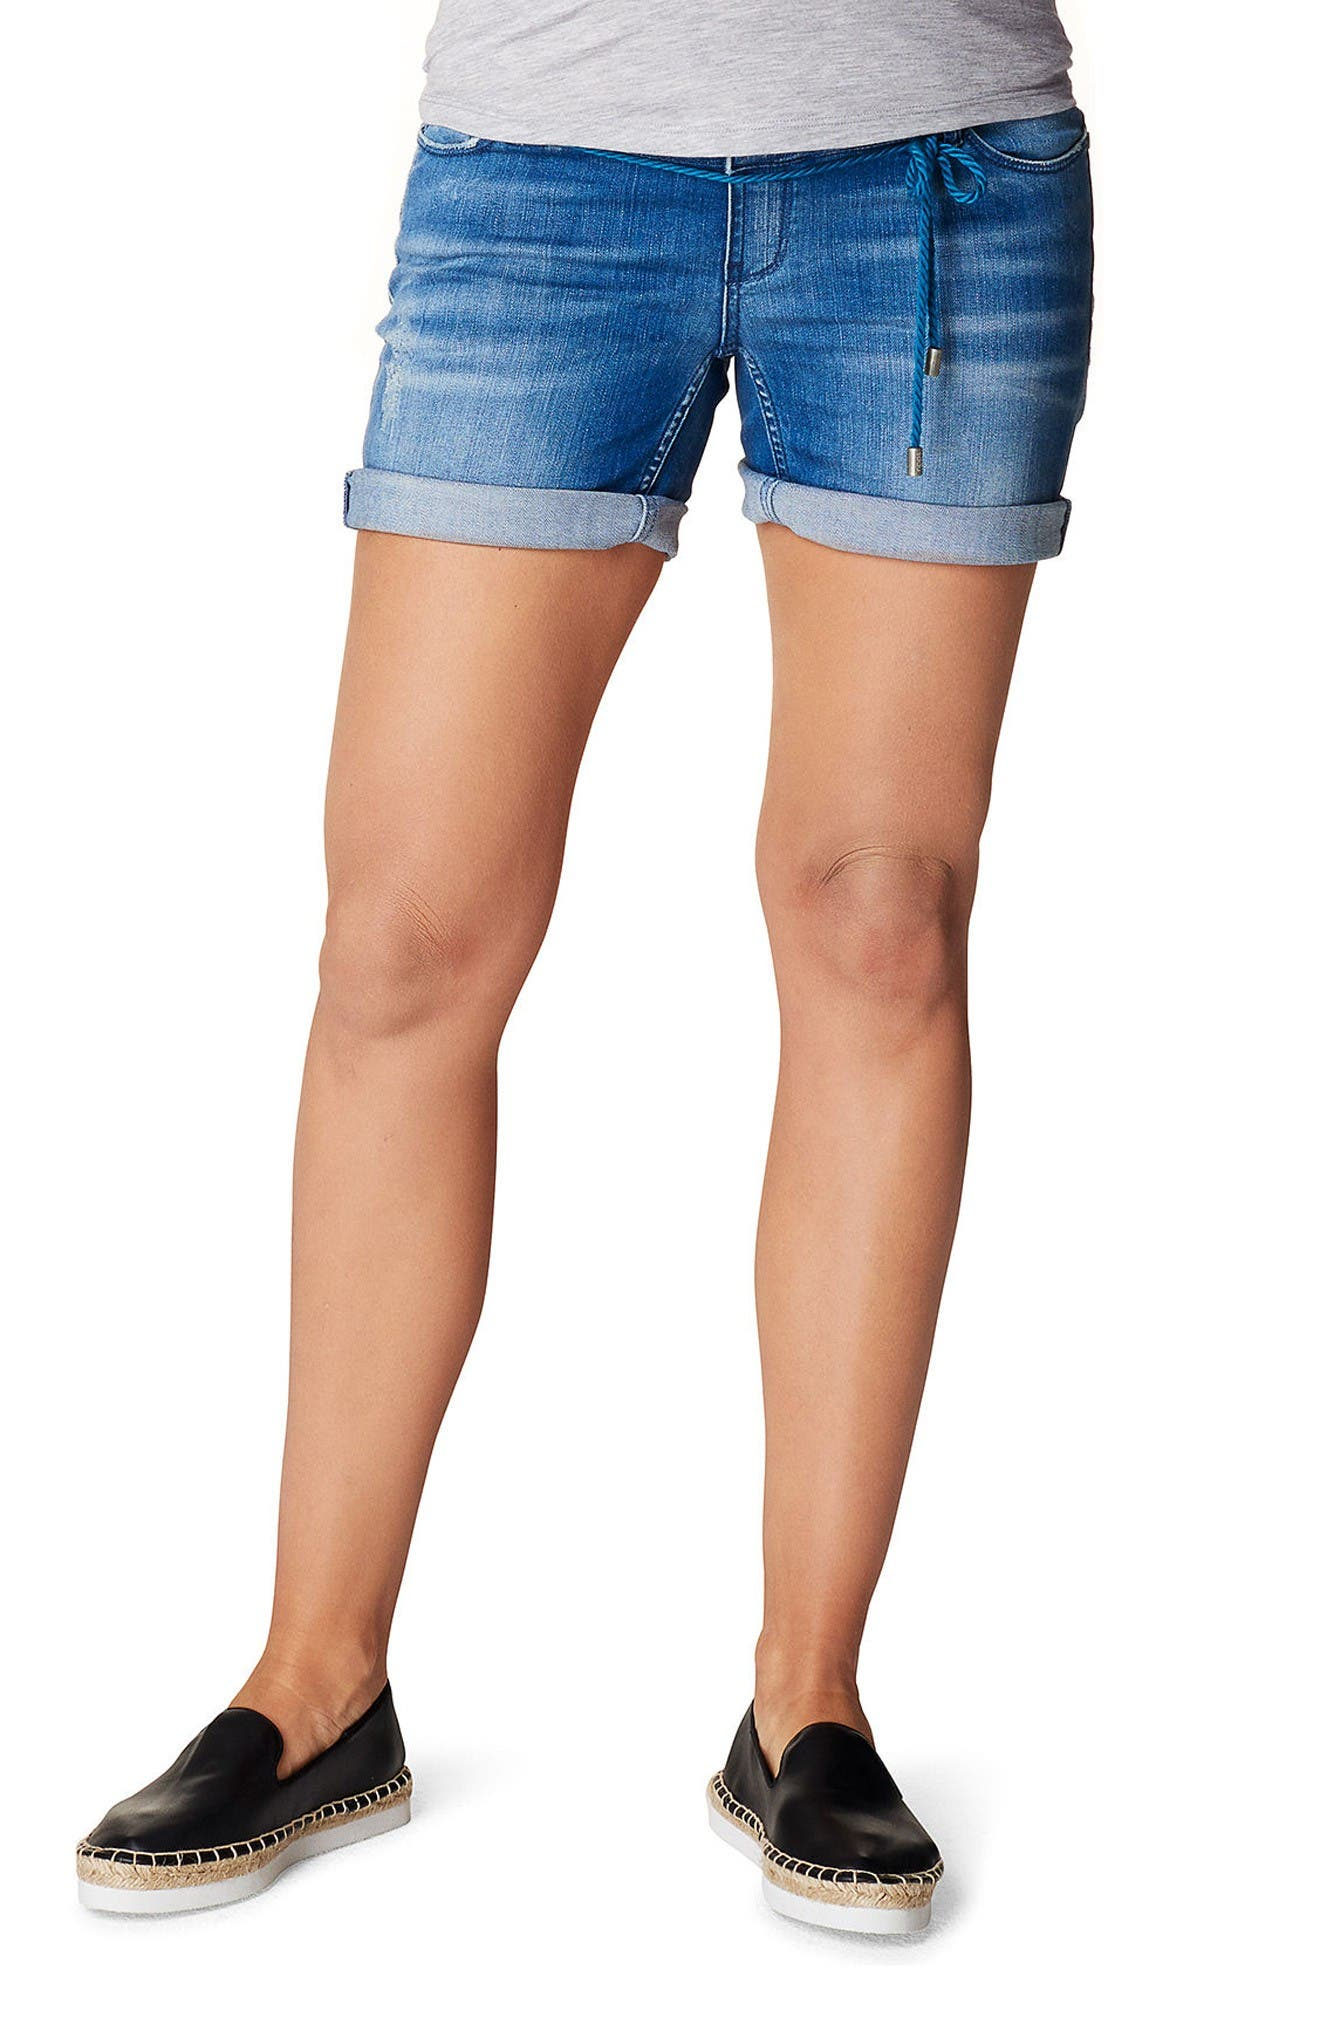 Noppies Zita Maternity Jean Shorts